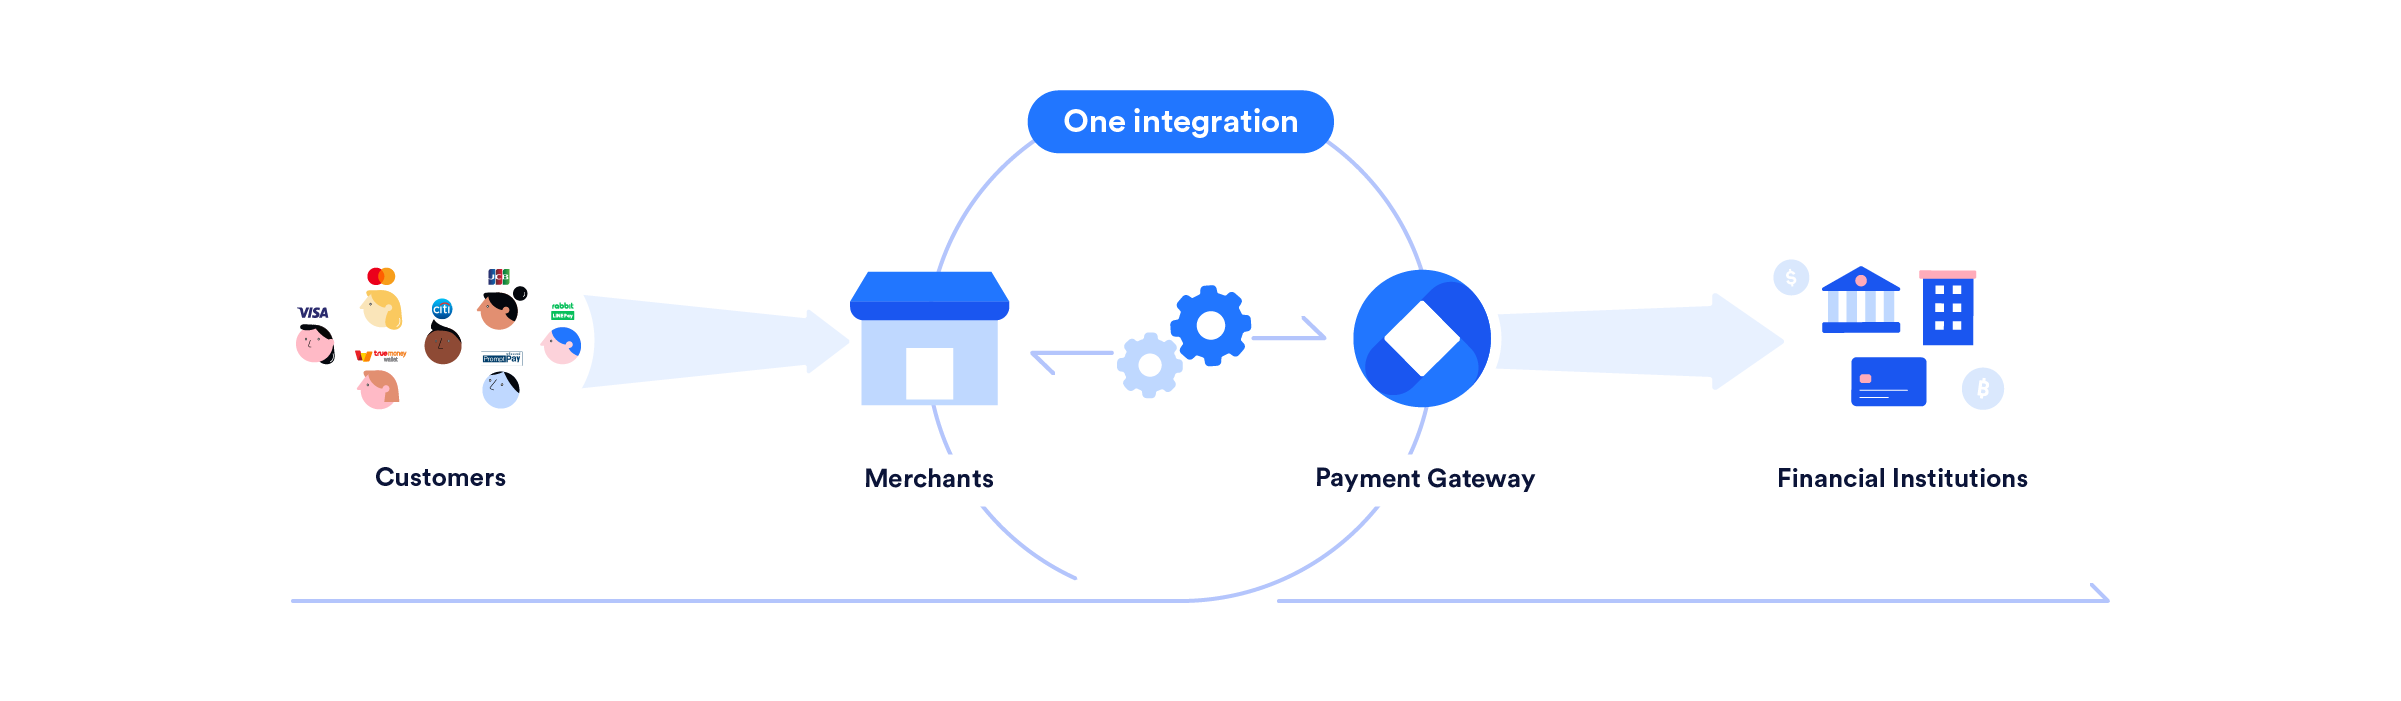 how a payment gateway works_one integration